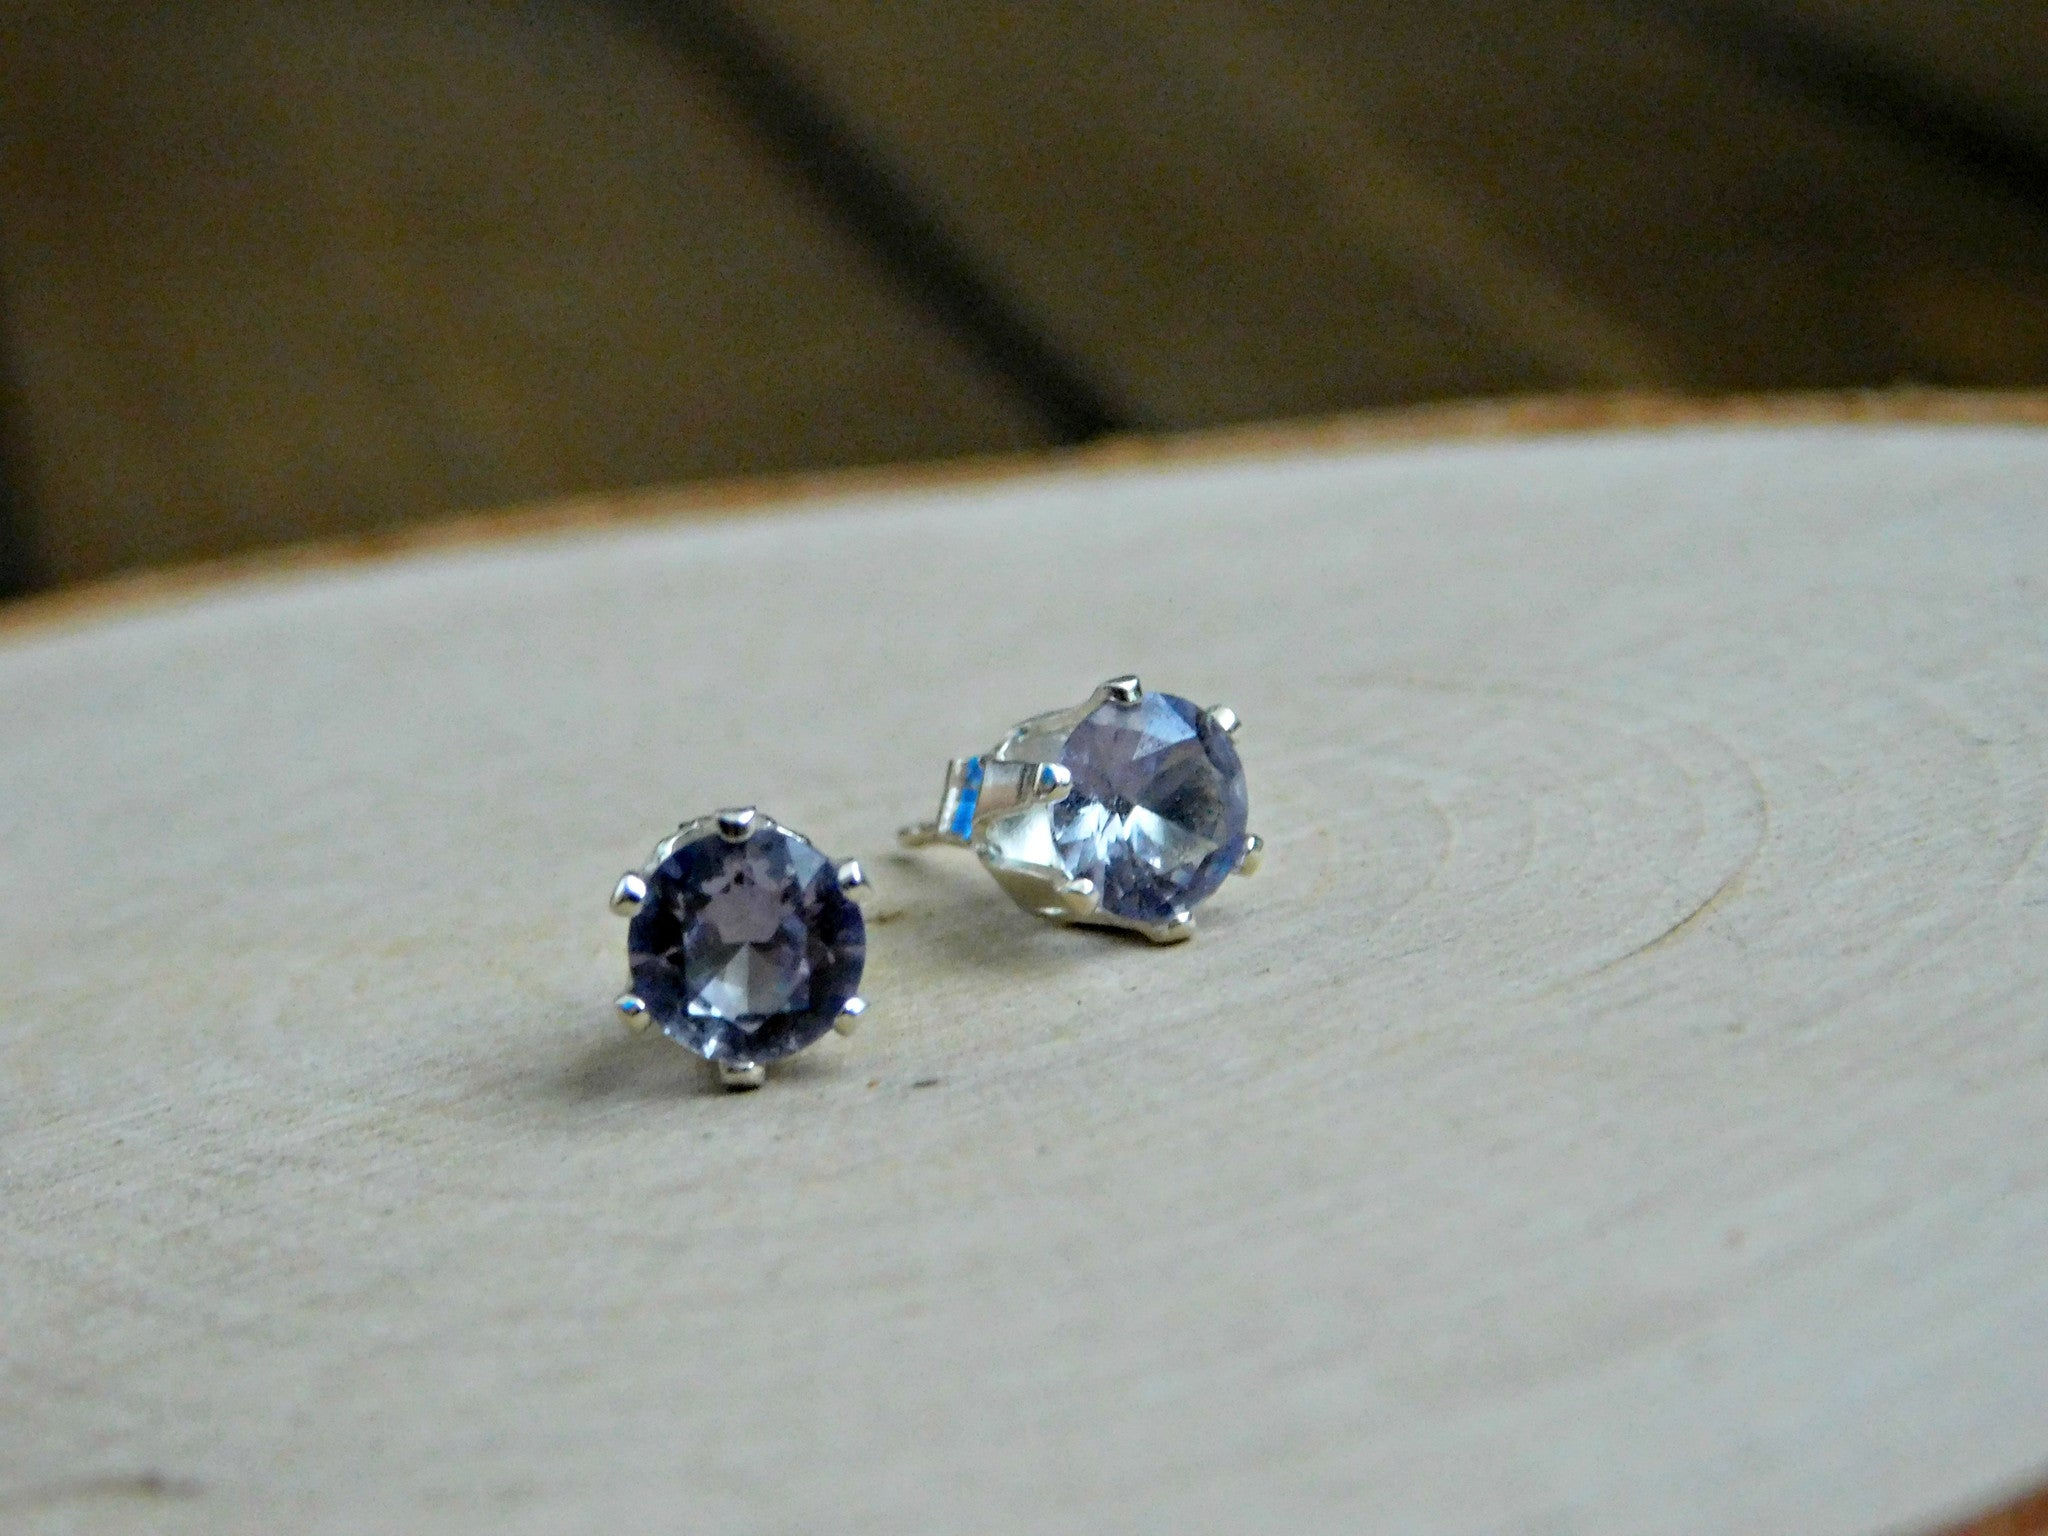 high in improvement appealing round gold as home and apply rings earrings to white decor created for definition necklaceappealing australia your alexandrite stud jewelry natural